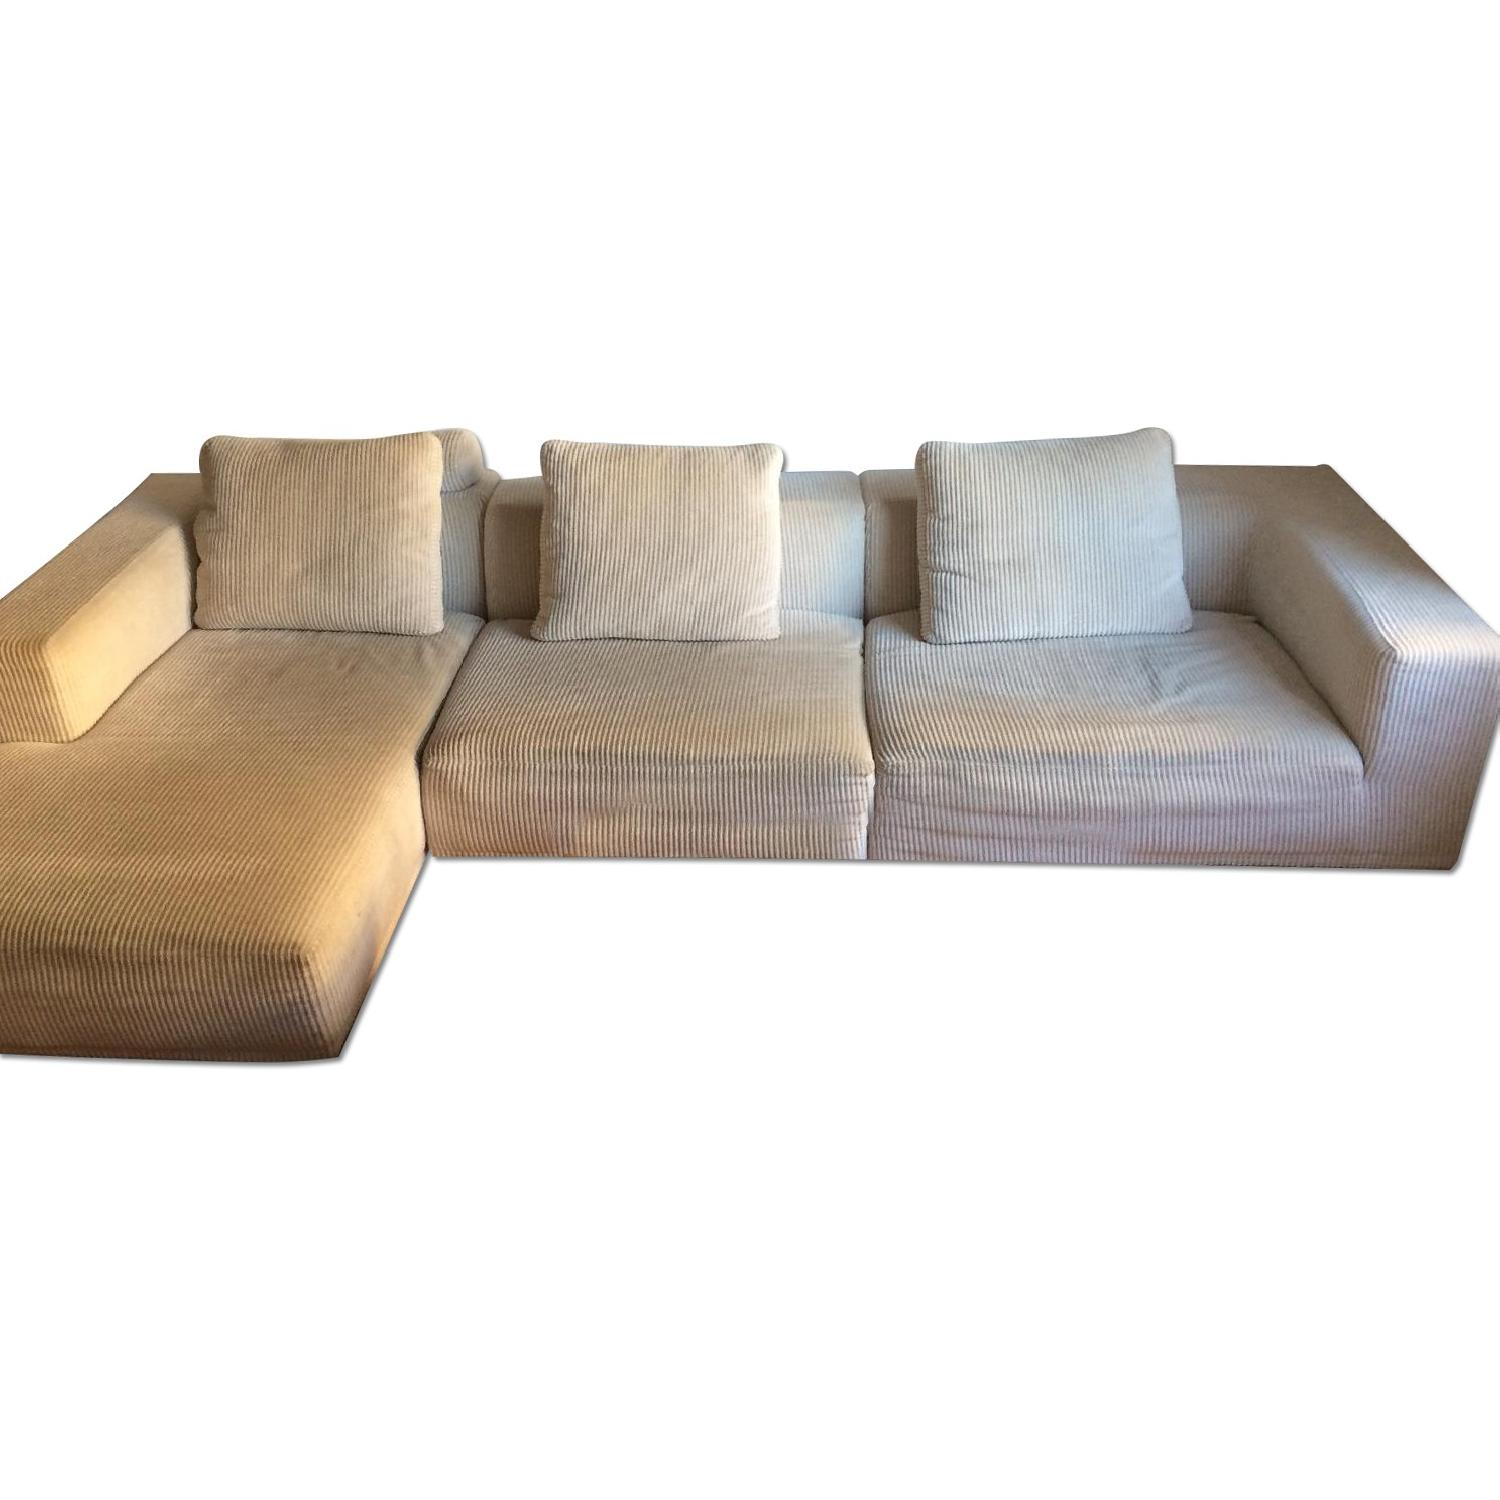 Danish design eilersen sectional sofa aptdeco for Danish design sofa